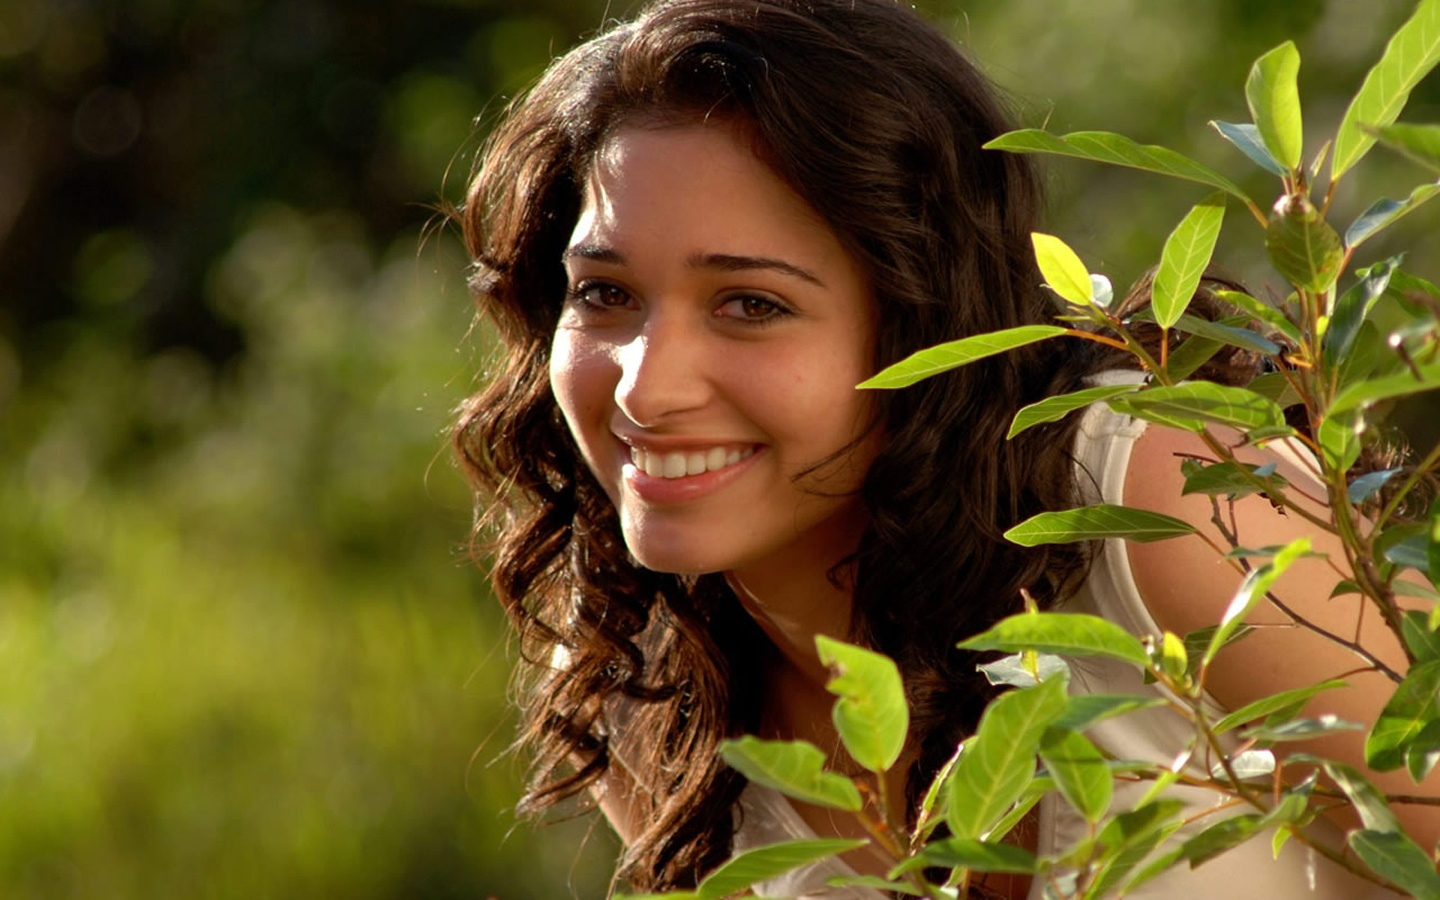 Tamanna Wallpapers Hd Laptop: Free Wallpapers For PC